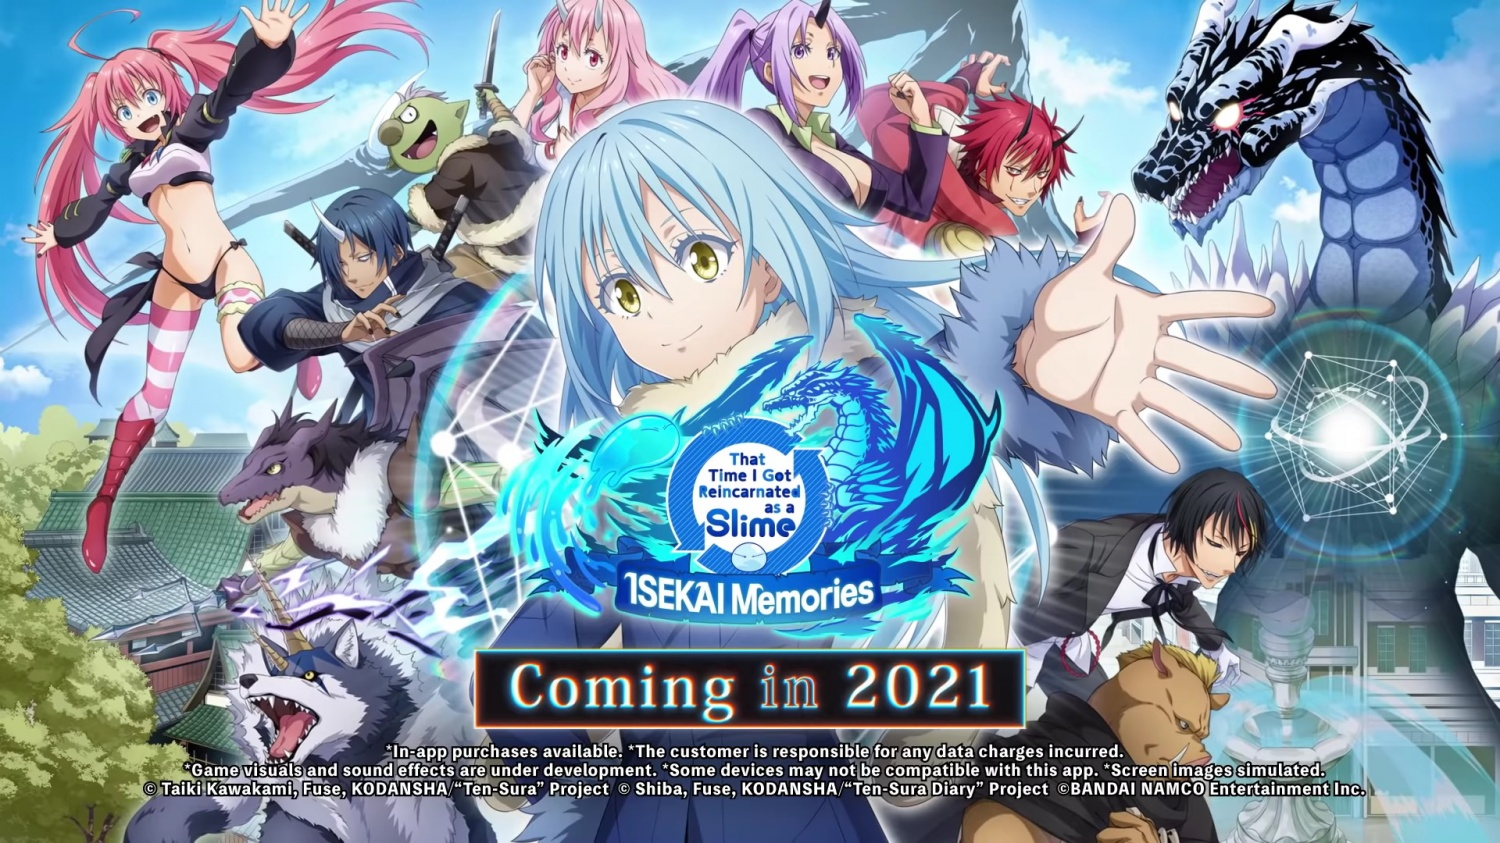 'That Time I Got Reincarnated as a Slime' to Arrive in Android, iOS: 3D Battle System, Pre-registration, and MORE